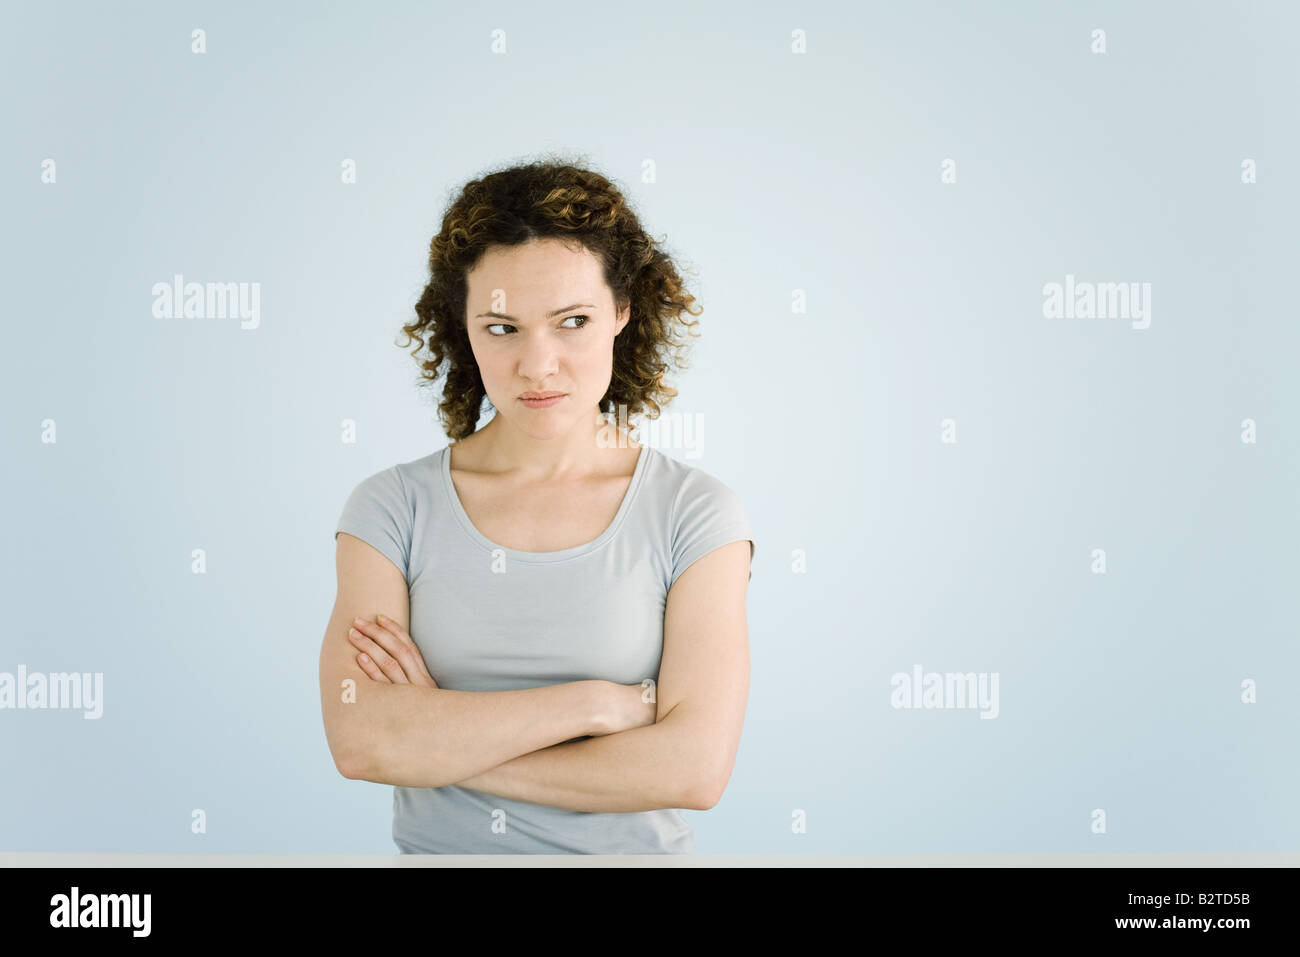 Woman sulking, arms folded, portrait - Stock Image